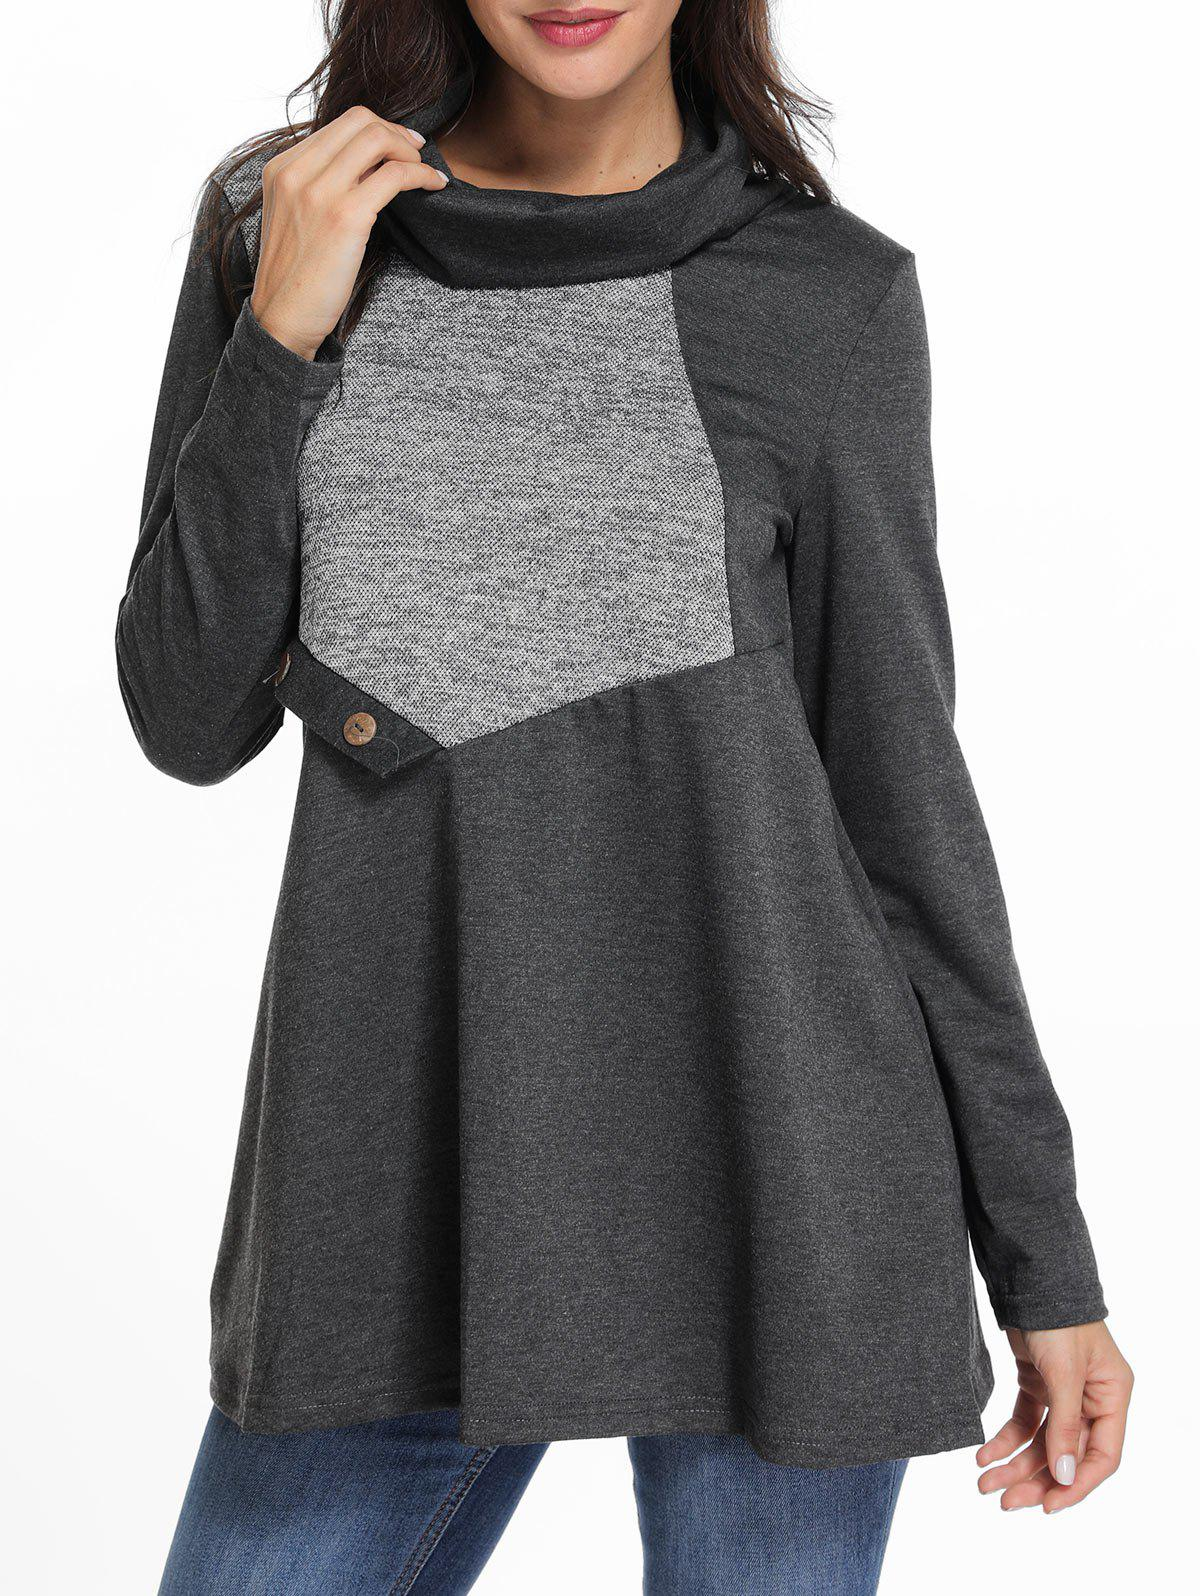 Latest Cowl Neck Contrast Tunic T Shirt